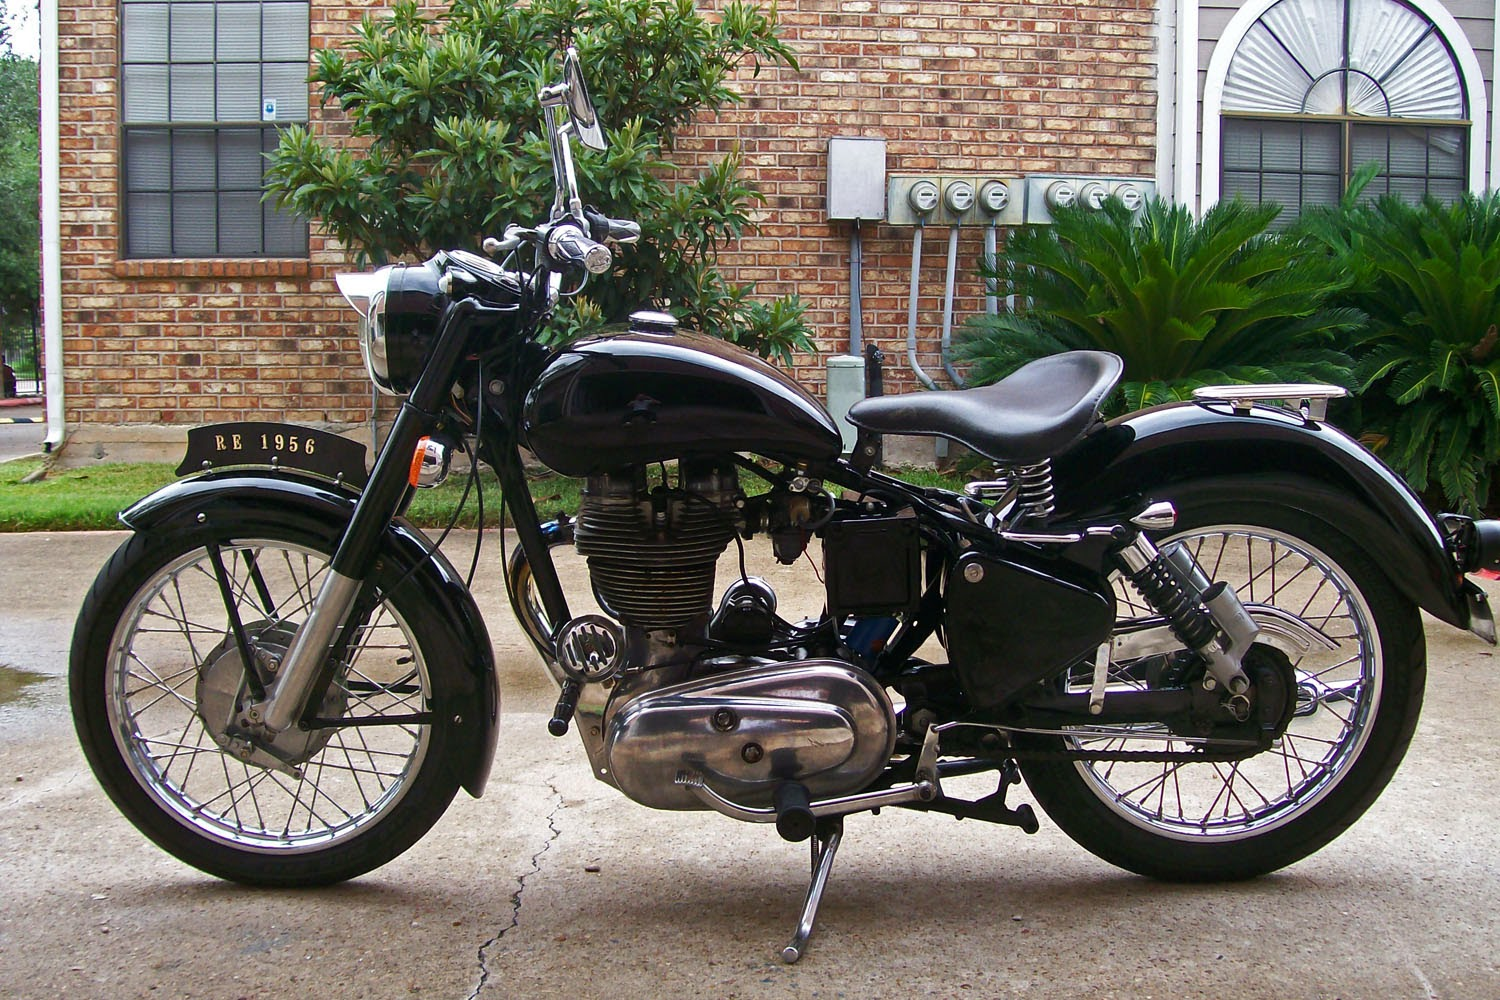 Enfield 500 Bullet Sixty-Five #6